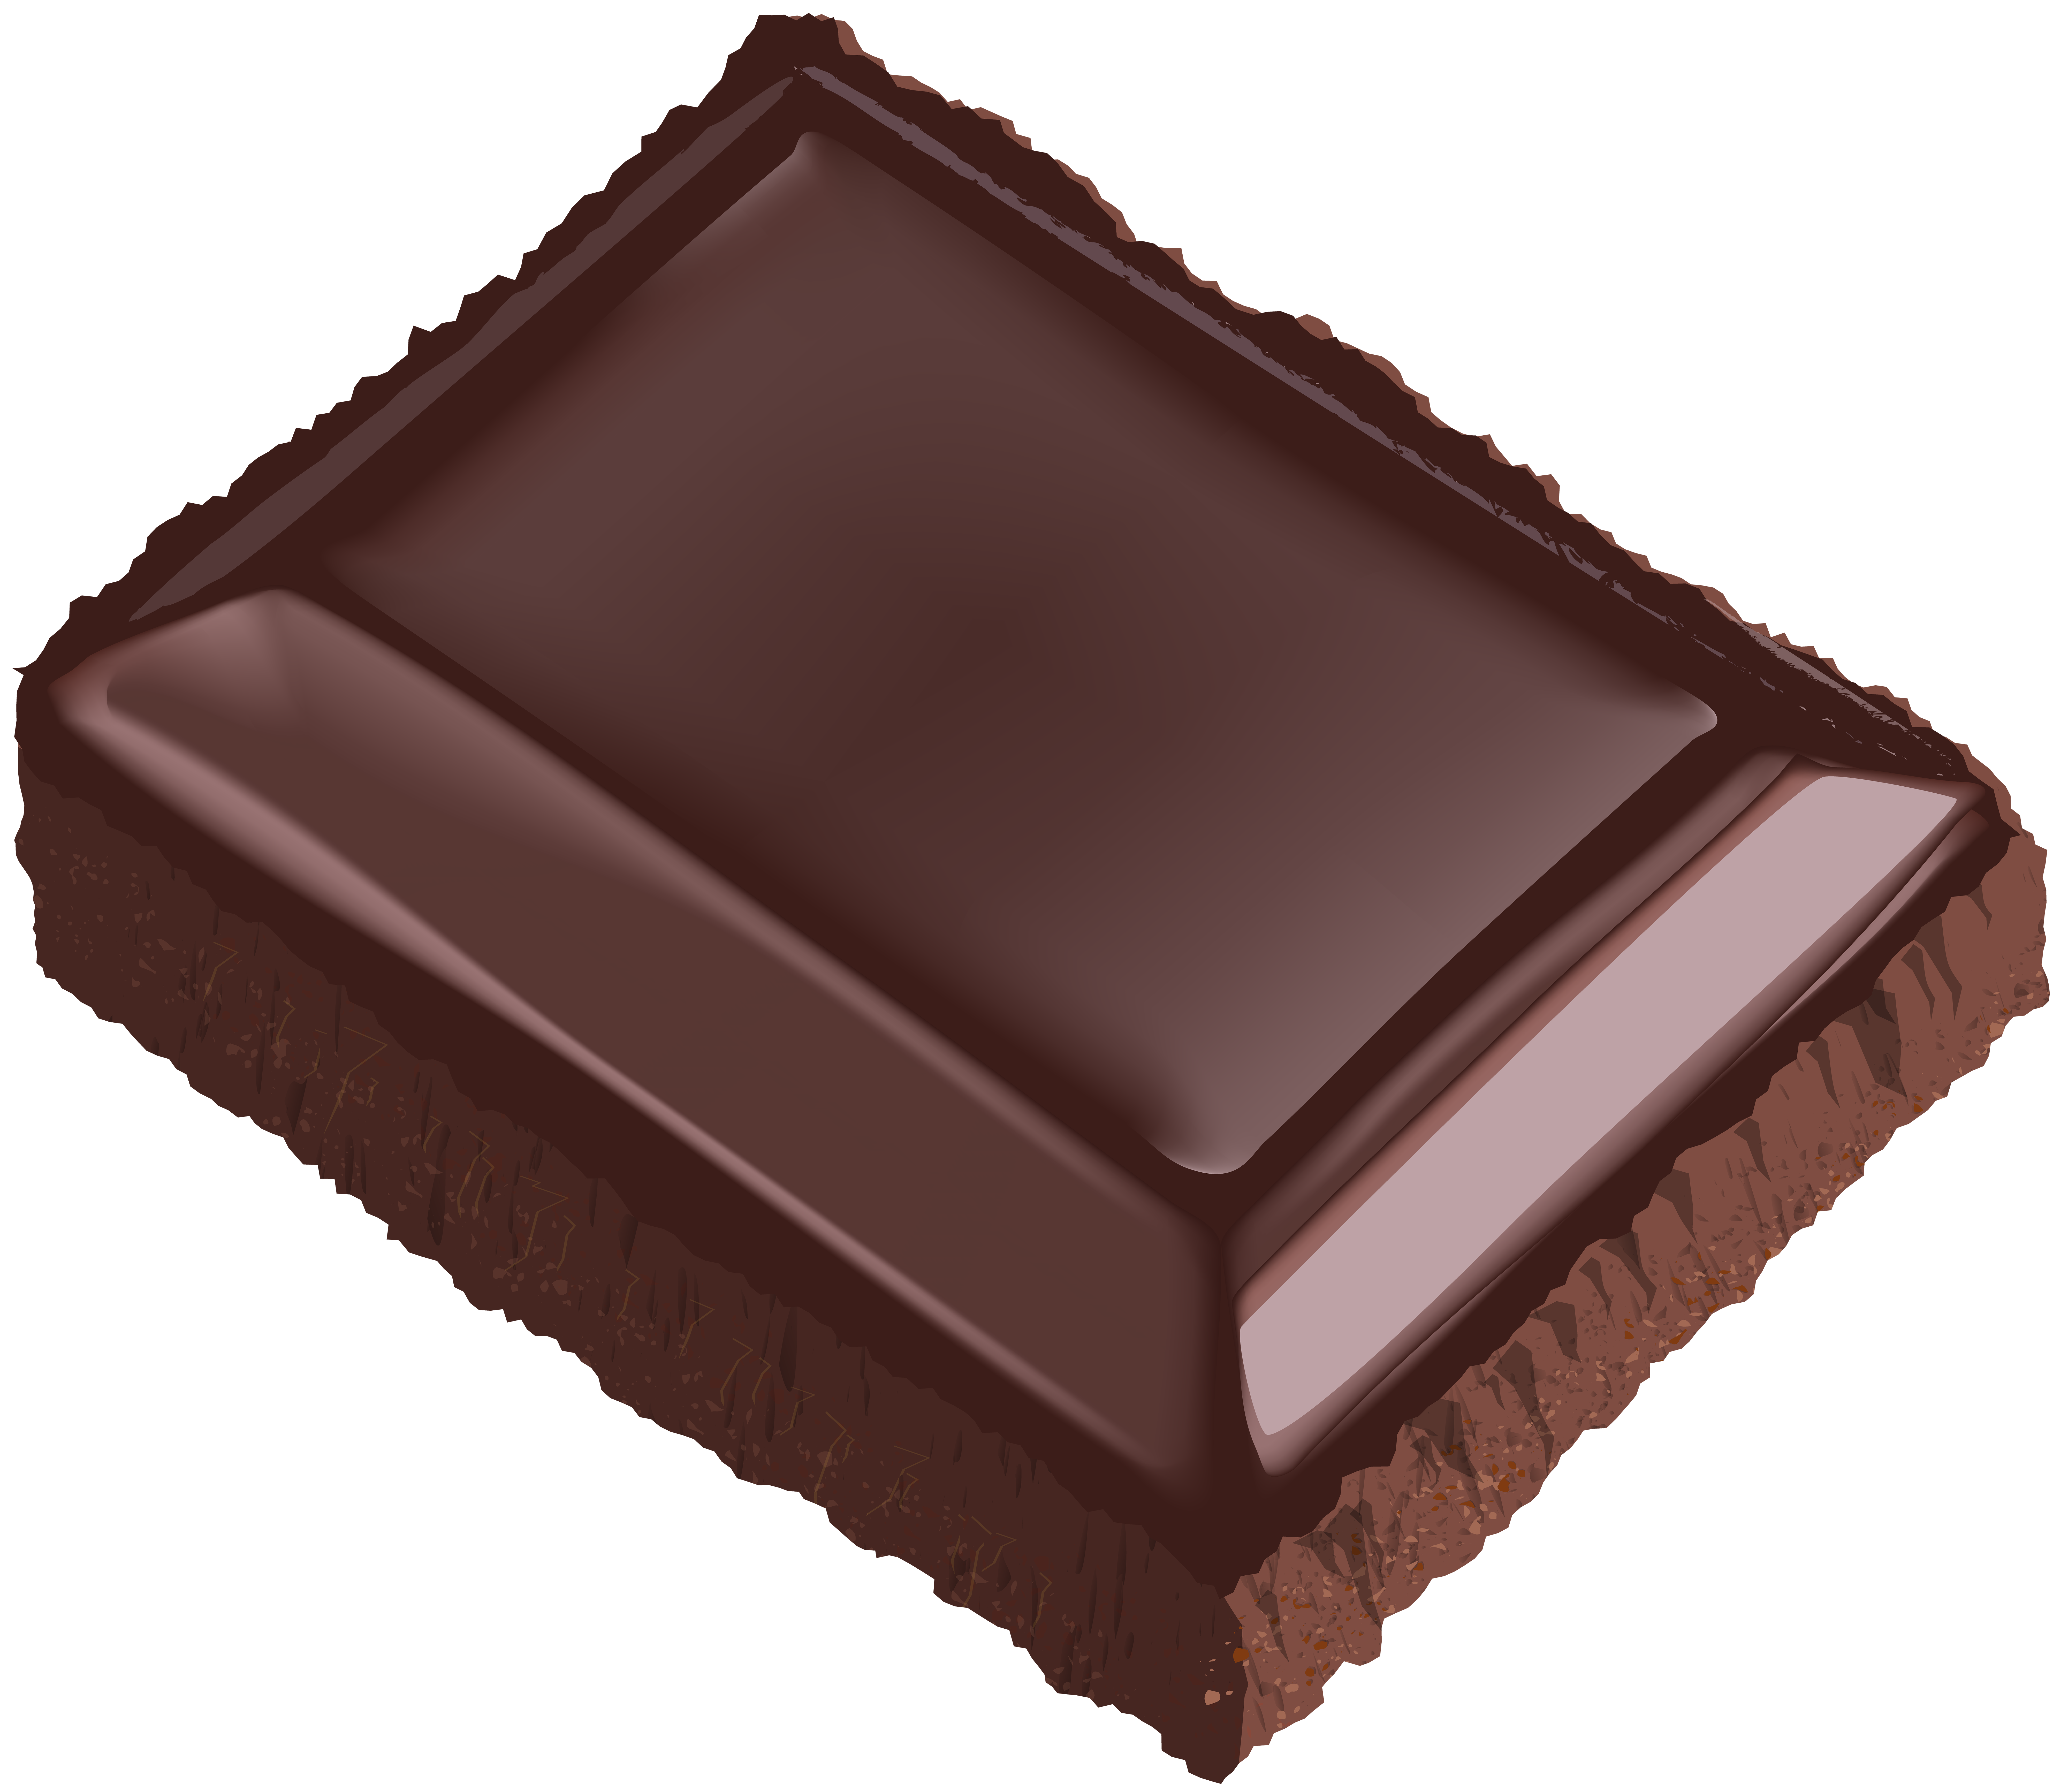 Clipart coffee pie. Chocolate at getdrawings com